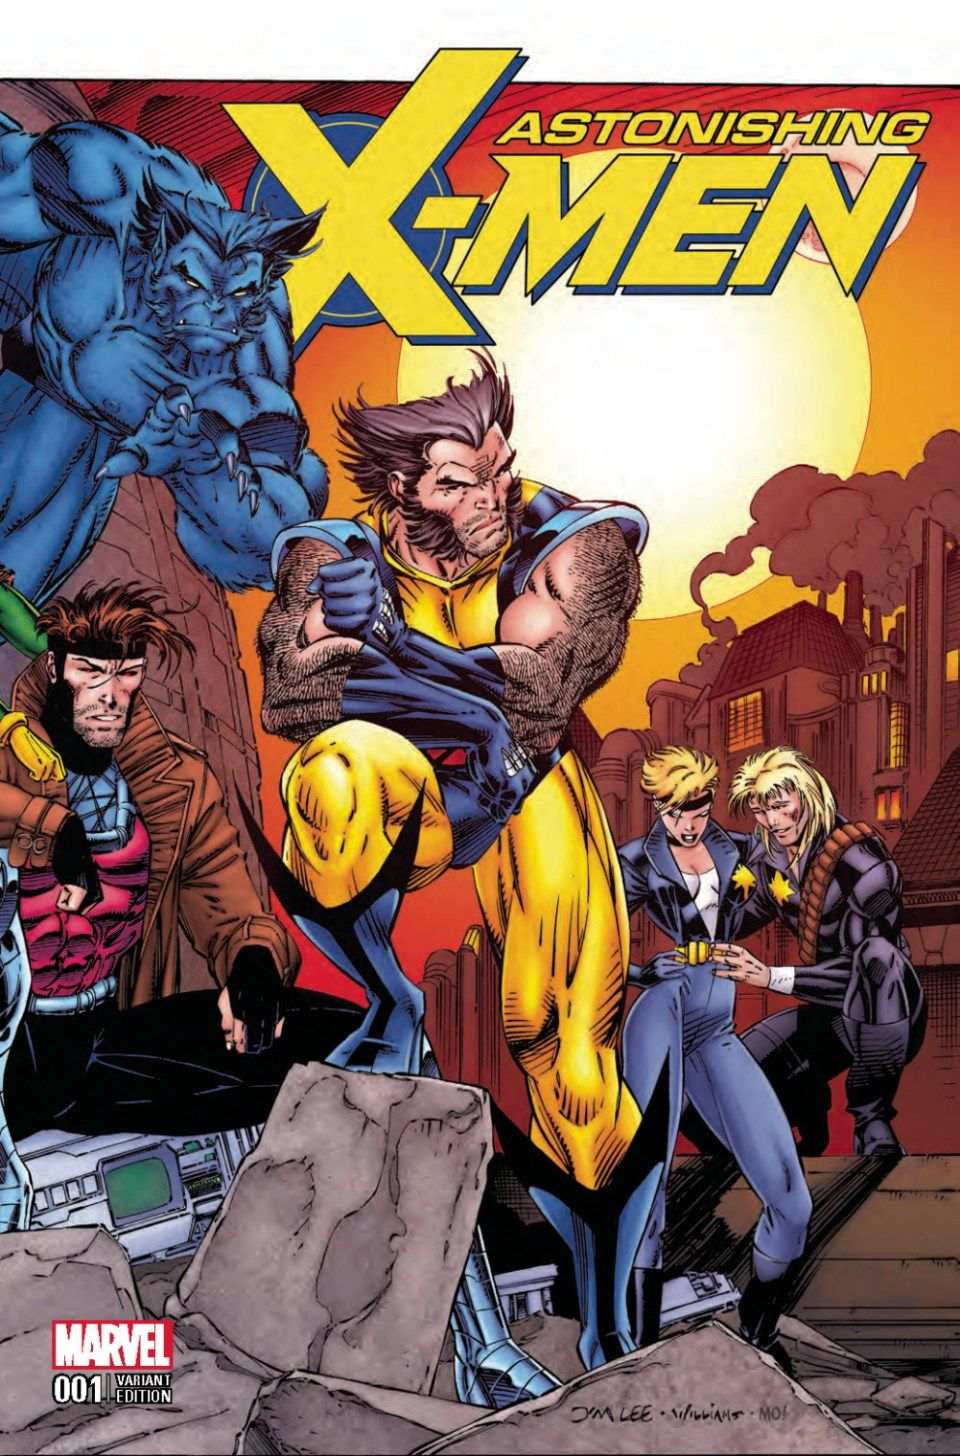 What Will Astonishing X Men Collected Editions Be Like In The Next 8 Years X Men Comics Comic Book Covers